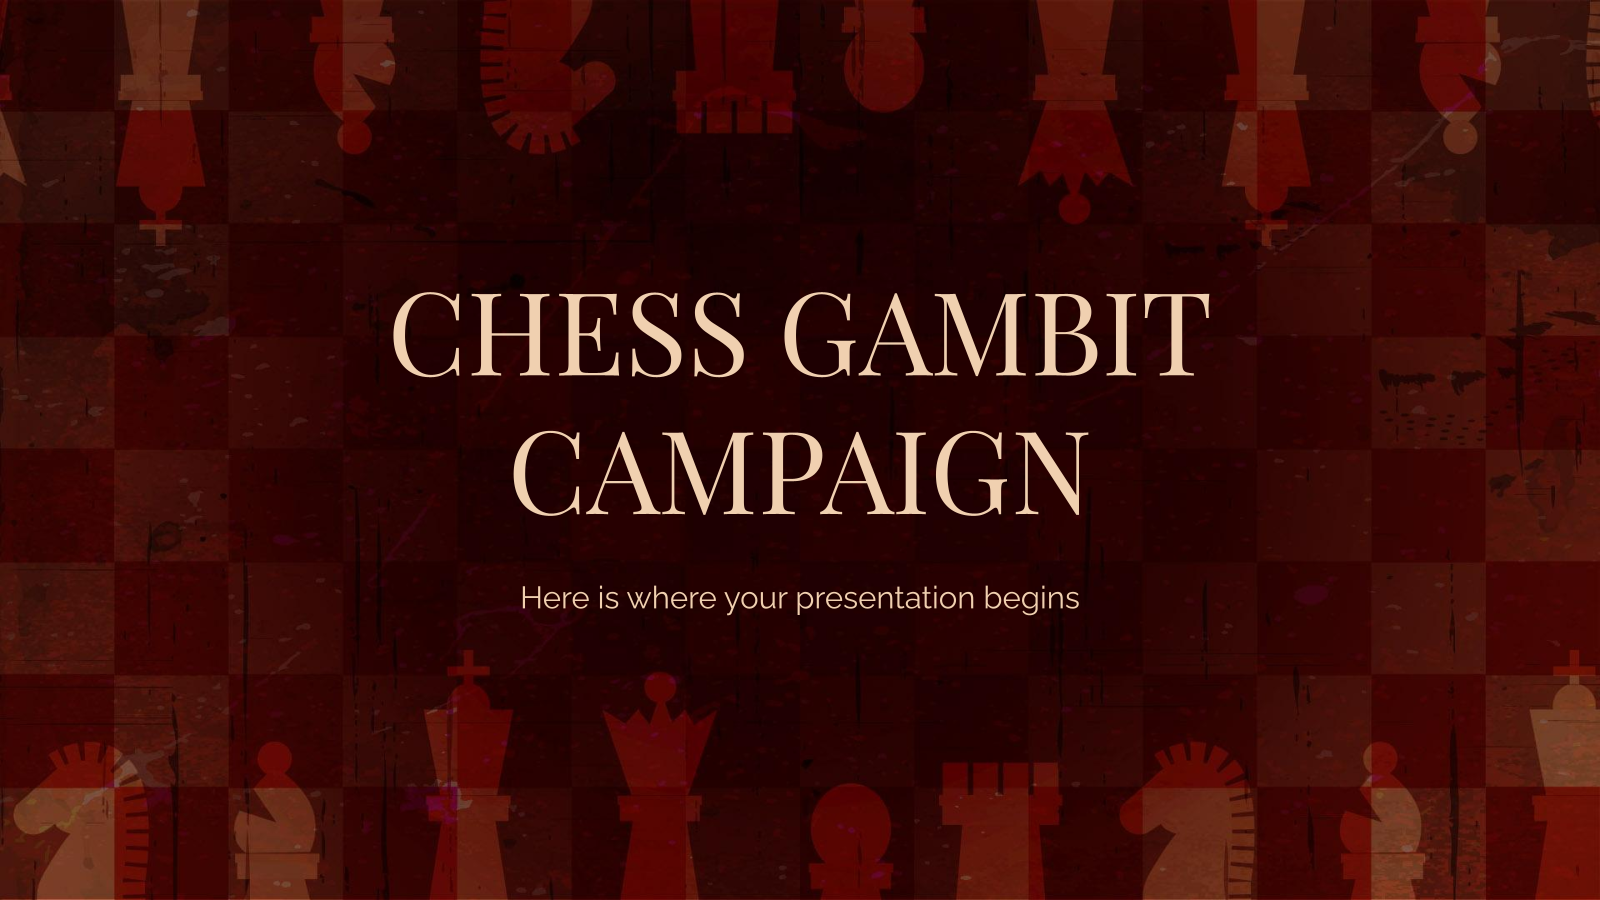 Chess Gambit Campaign presentation template